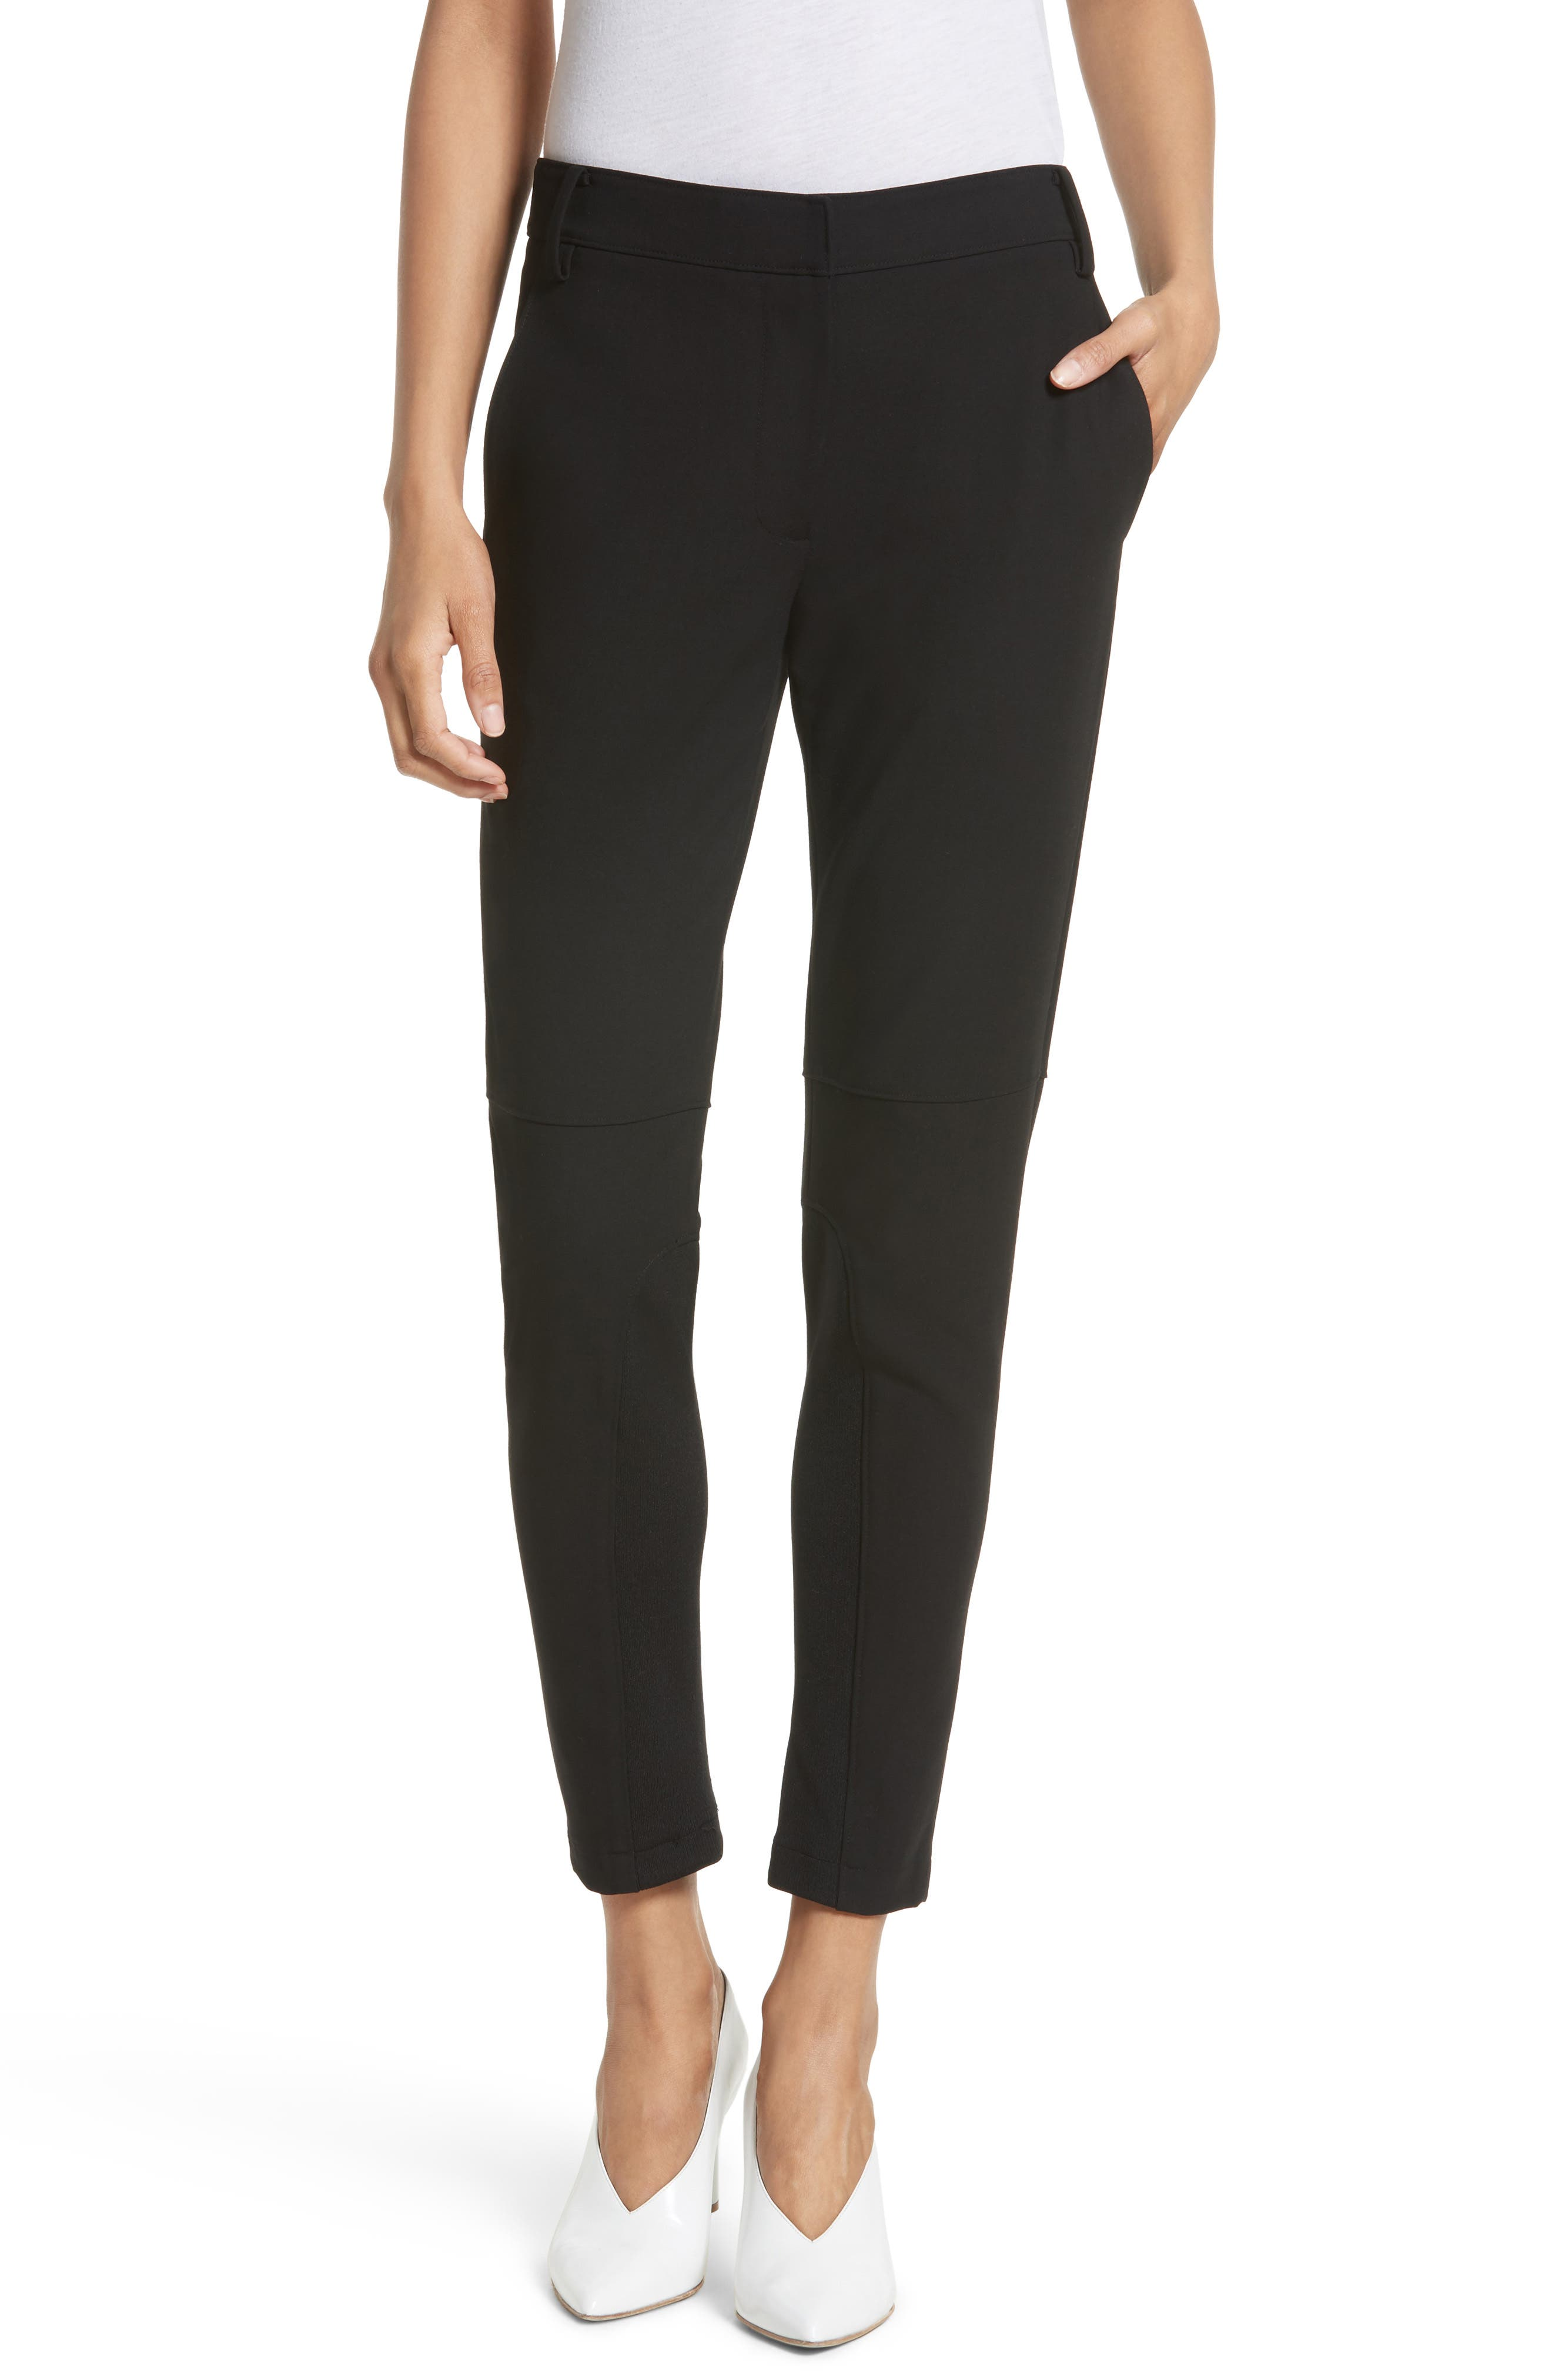 Tibi Anson Stretch Insert Ankle Pants